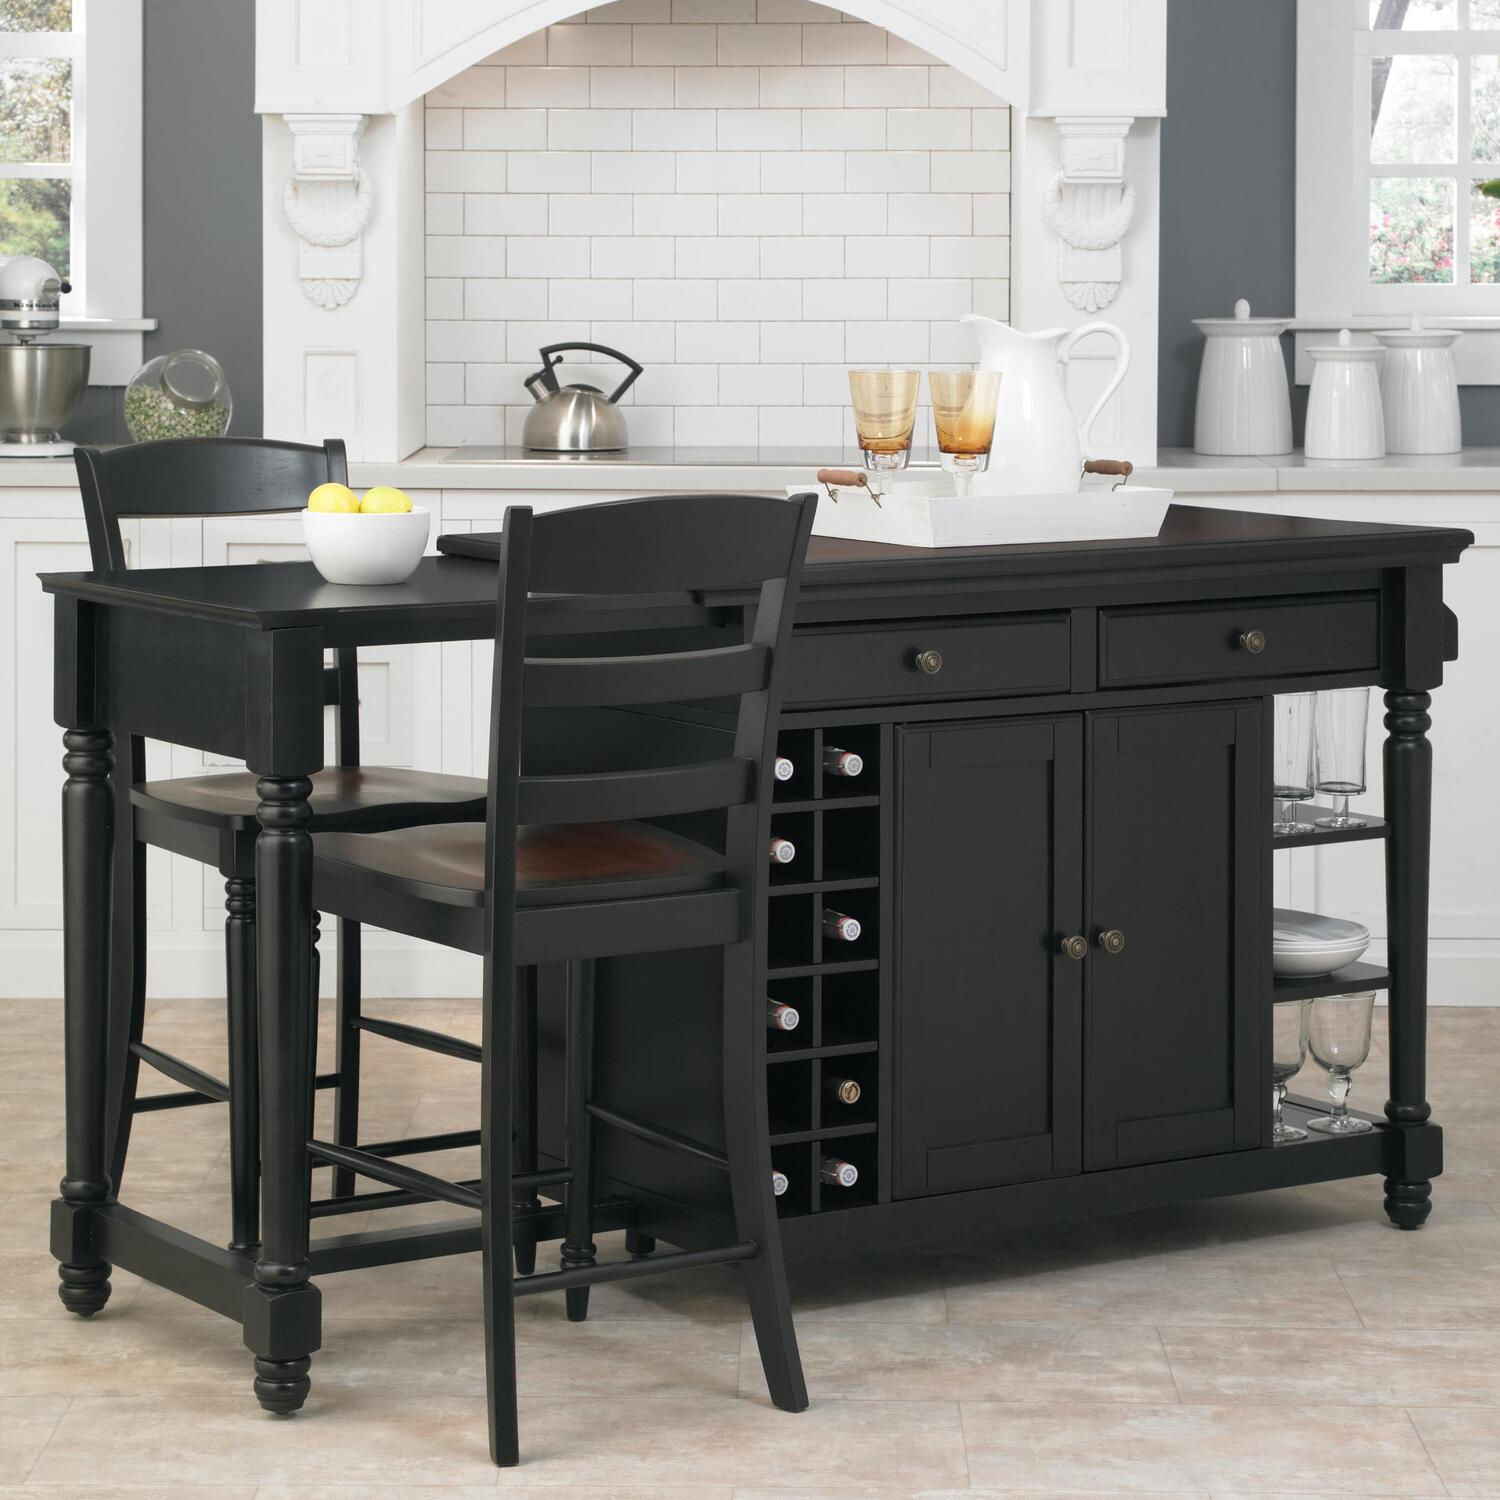 Stools Kitchen Islands Home Styles Grand Torino Kitchen Island And Two Stools By Oj